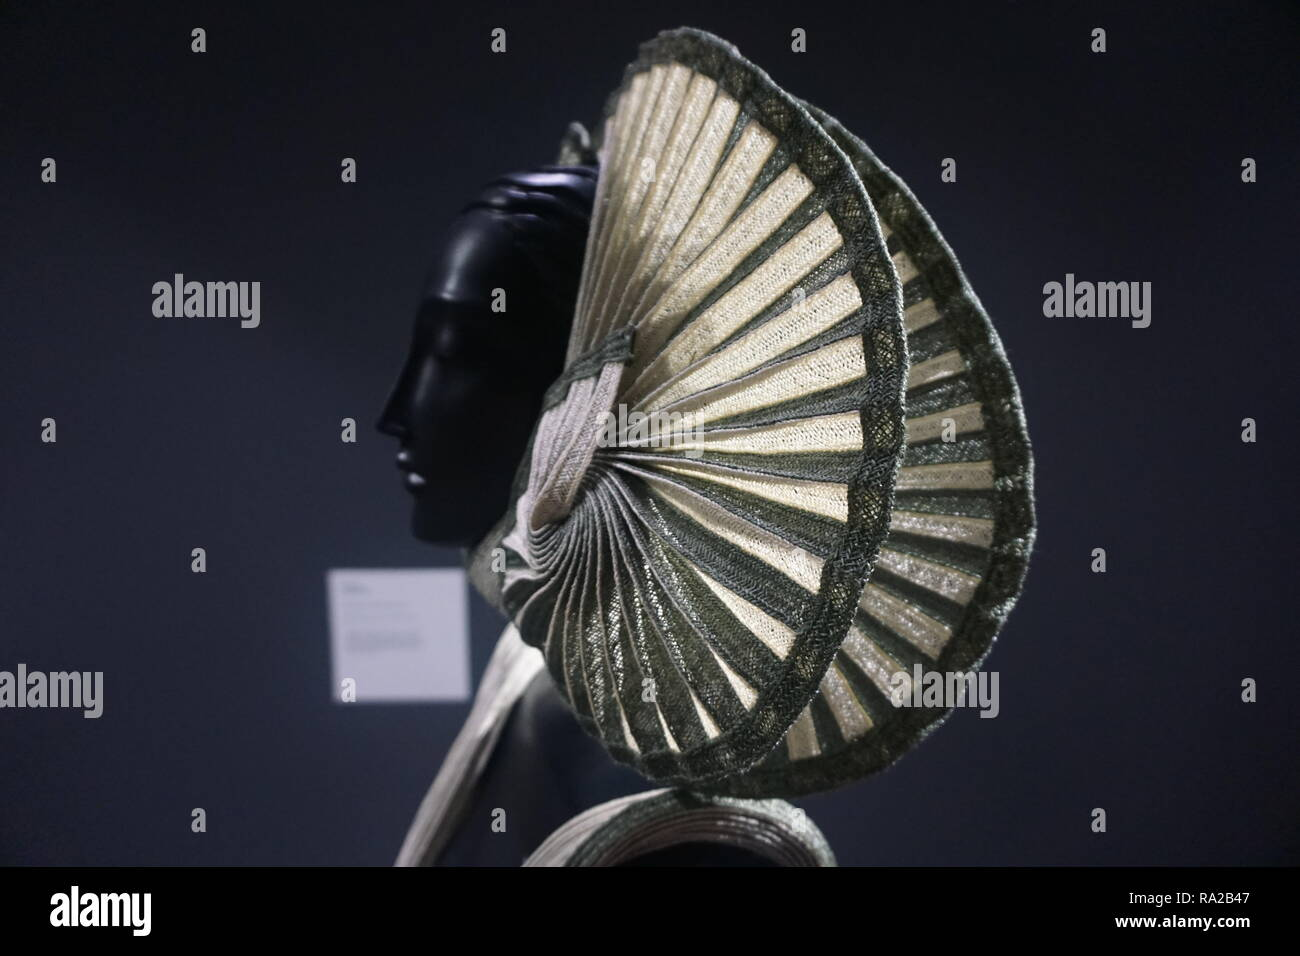 Headdress of an Outfit of Wearable Art designed by R.R. Pascoe, on Exhibit at the WOW Museum and Classic Car Collection in Nelson, NZ - Stock Image